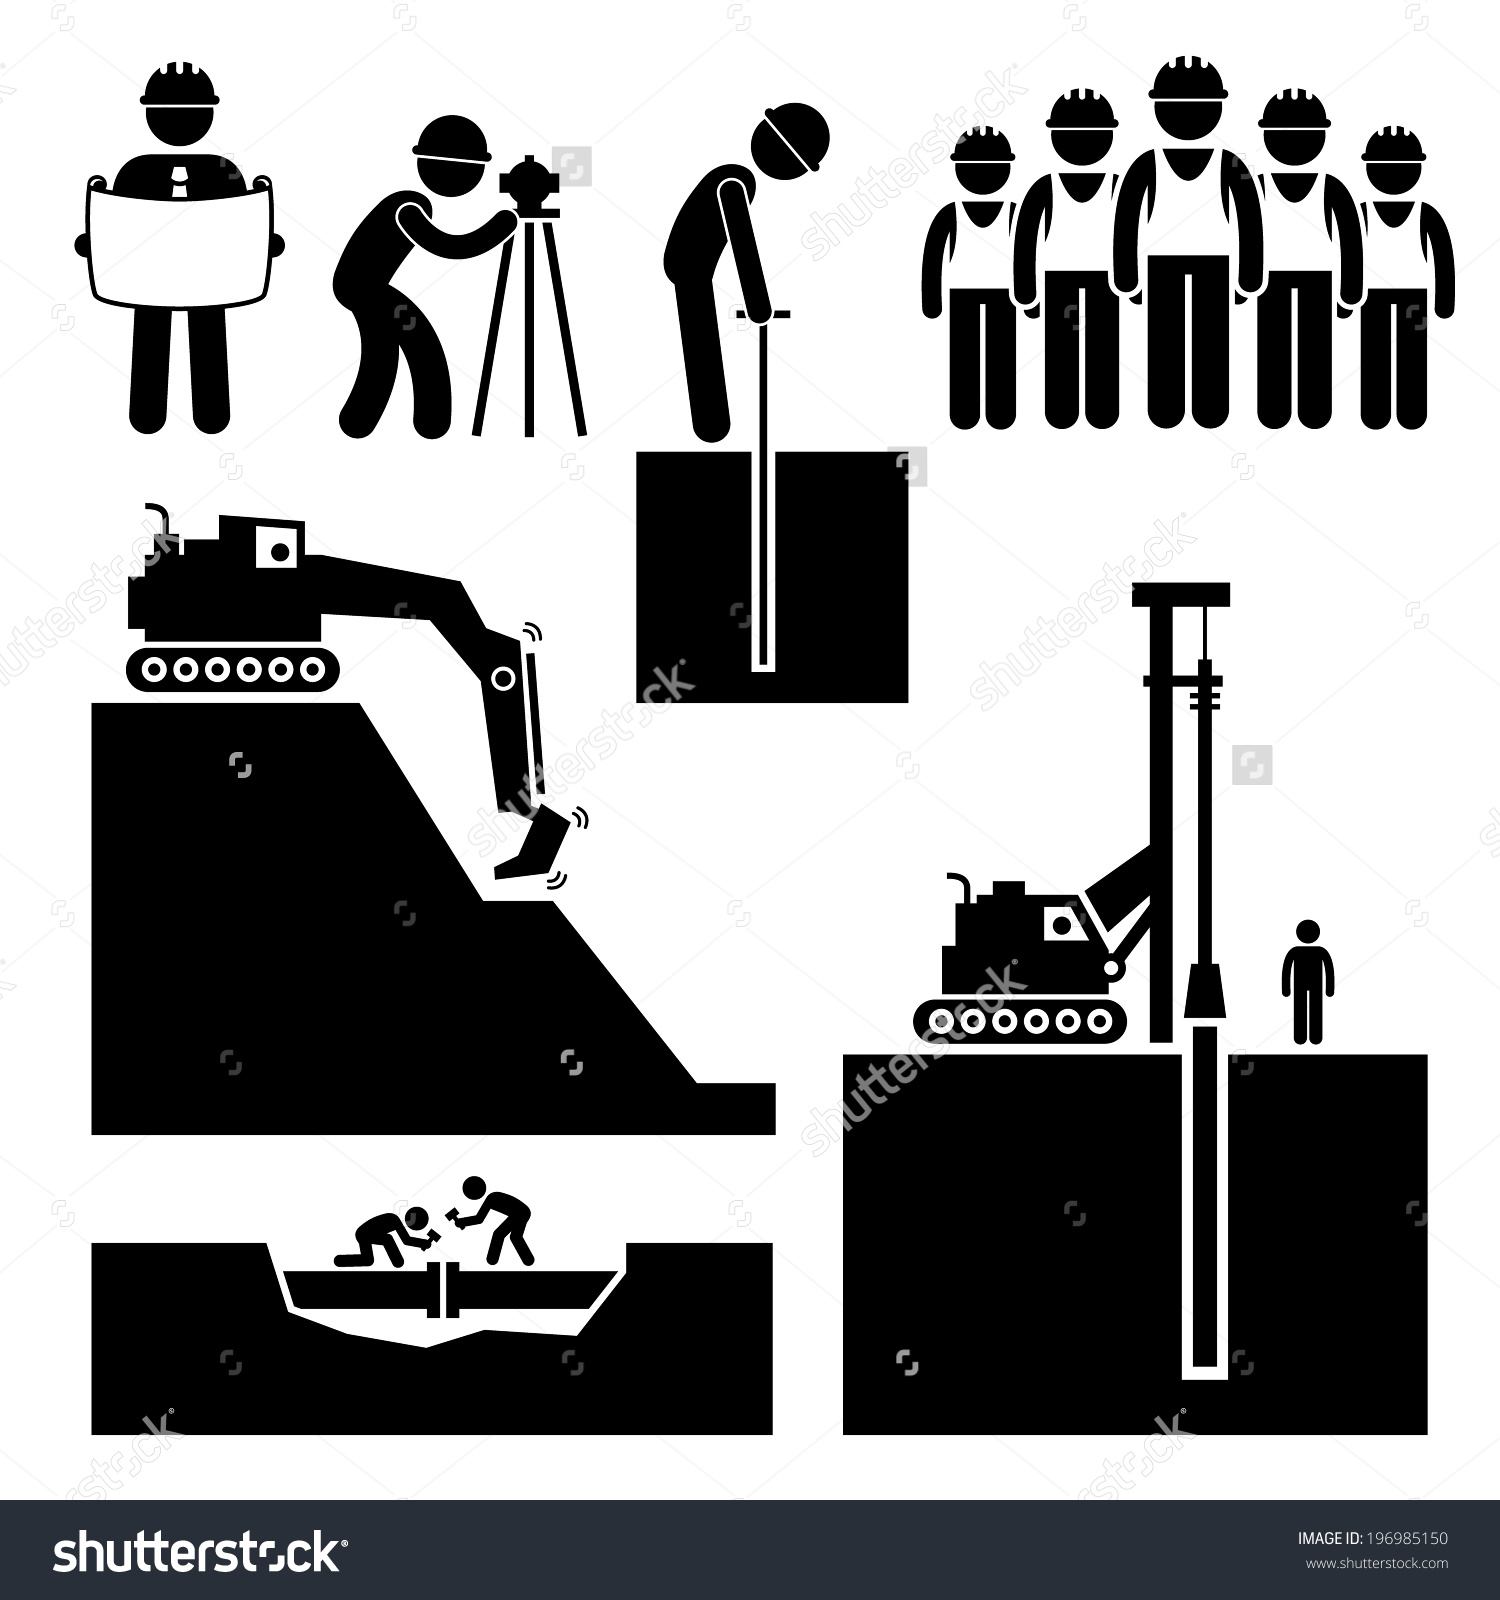 Civil engineer at work clipart.